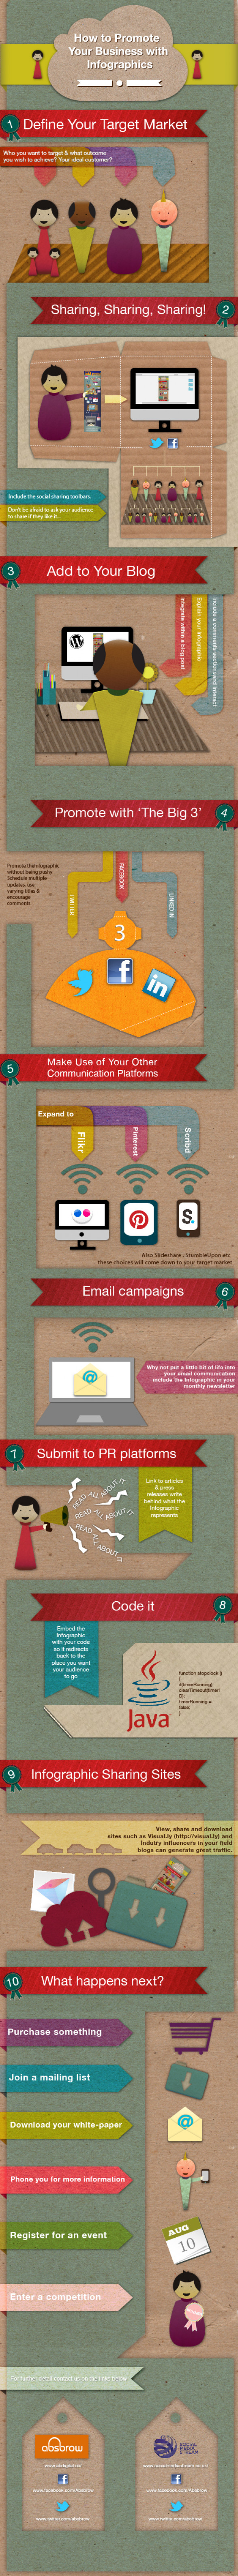 Promoting your Business Using Infographics